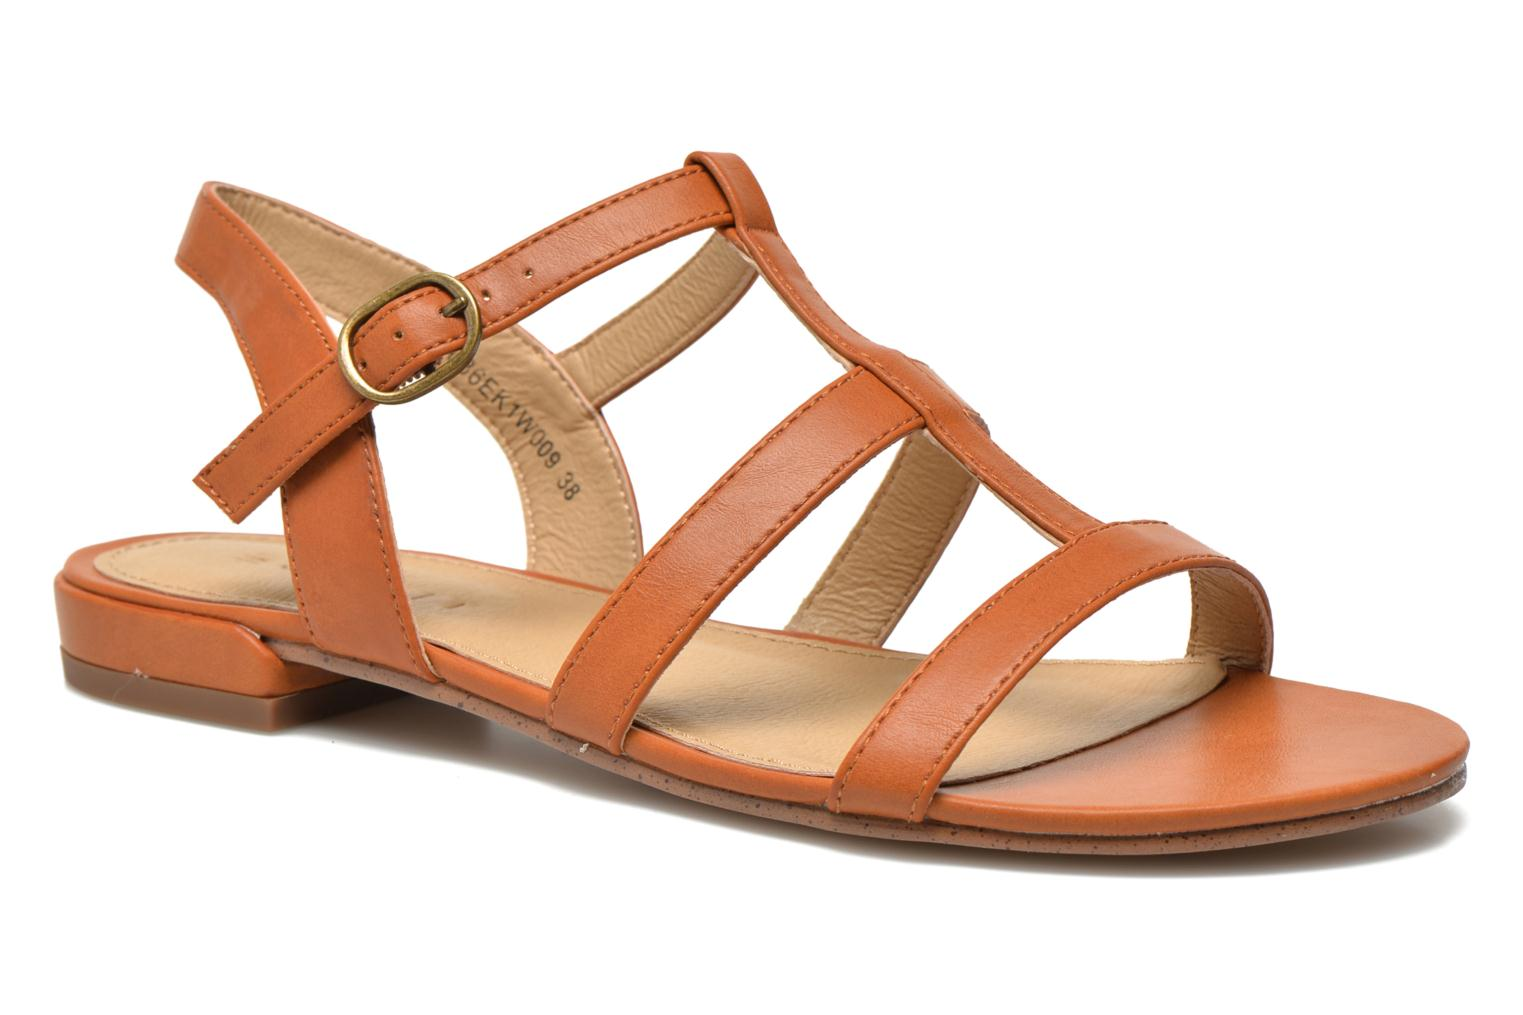 Aely Sandal by Esprit